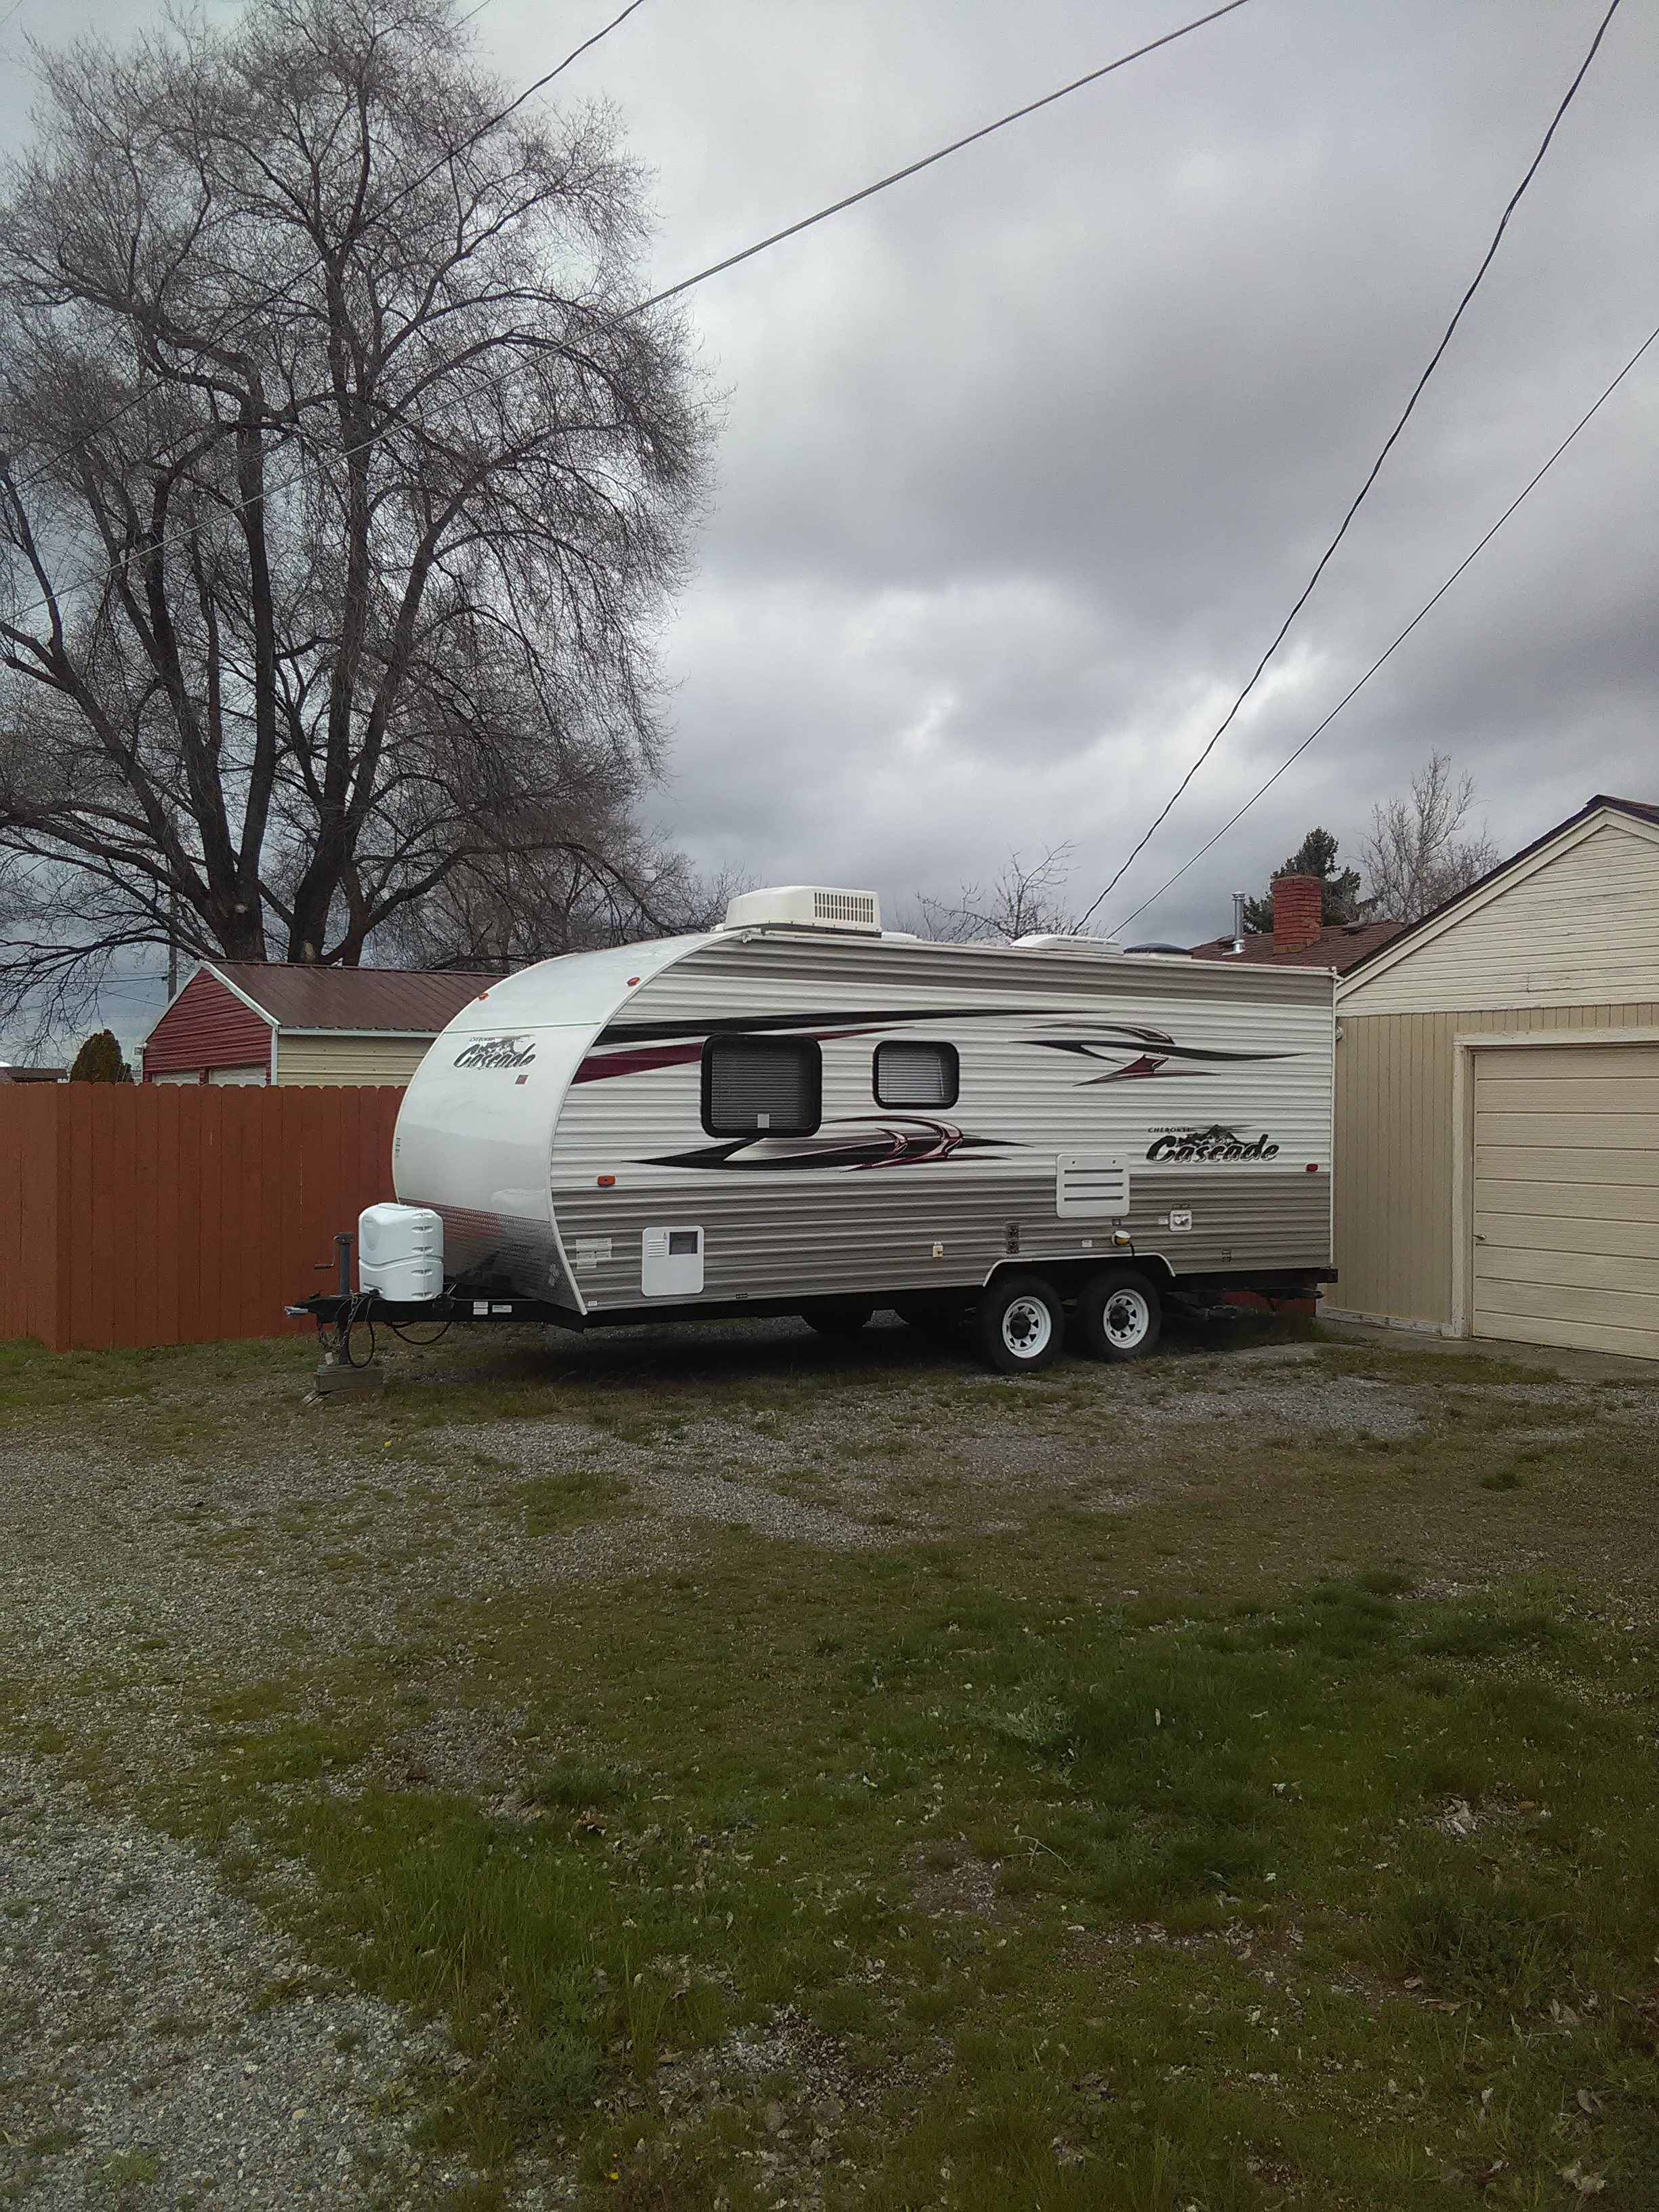 2011 Forest River Cherokee Cascade 22 1/2 Sleeps 4, full bath, stove, refrigerator, freezer, AC, TV, DVD, Radio. Has Queen pillow mattress and two bunks for kids or stuff.. Forest River Cherokee 2011